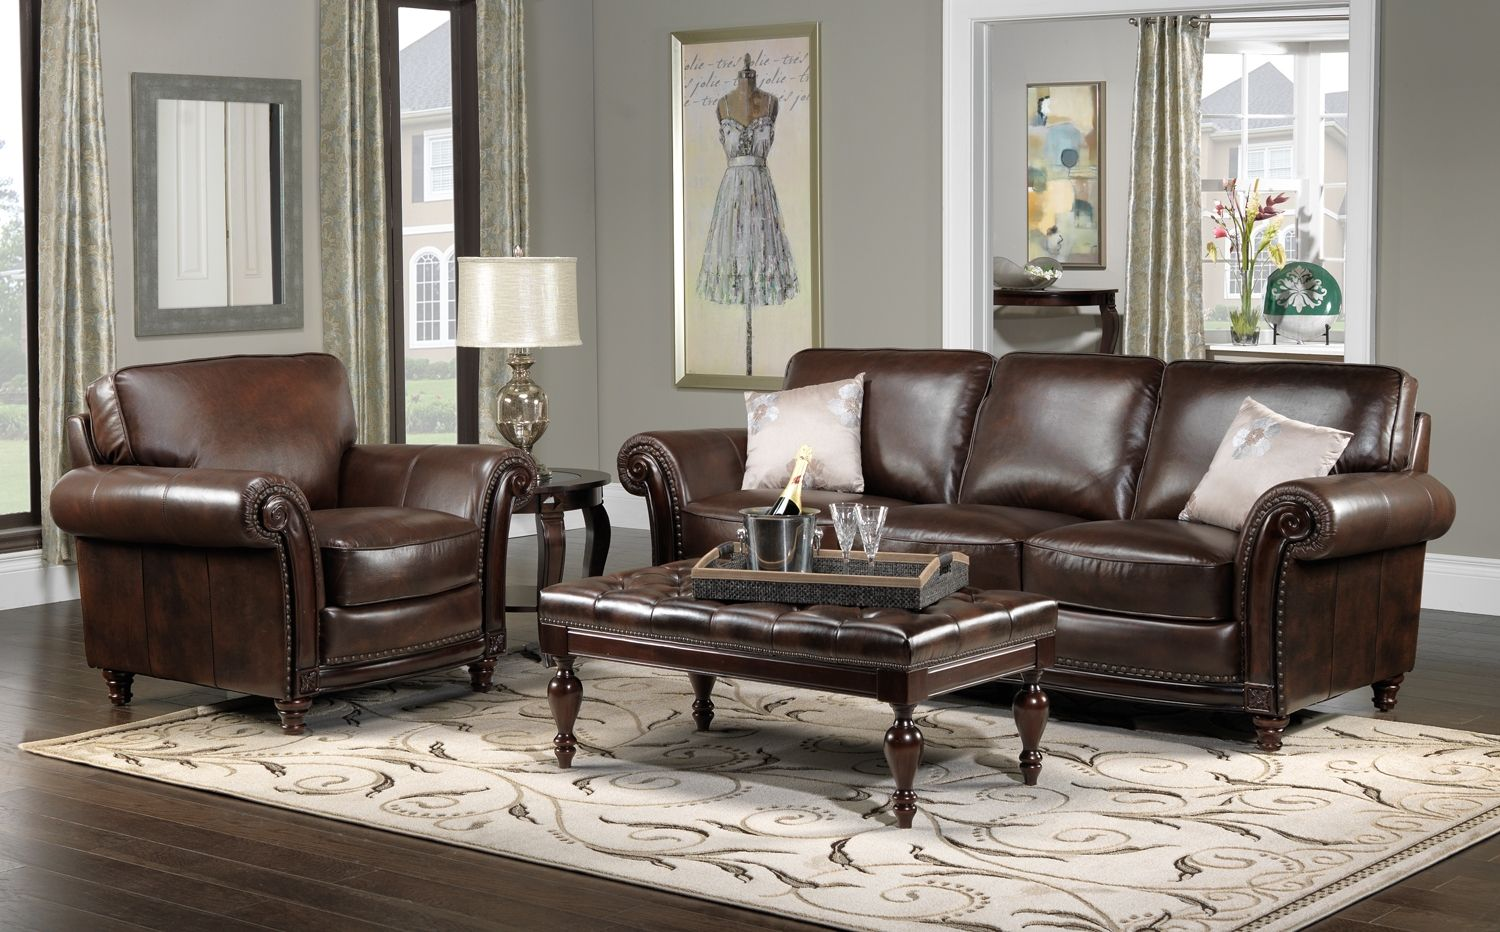 Best Dream House Decor Ideas For Brown Leather Furniture Gngkxz 400 x 300